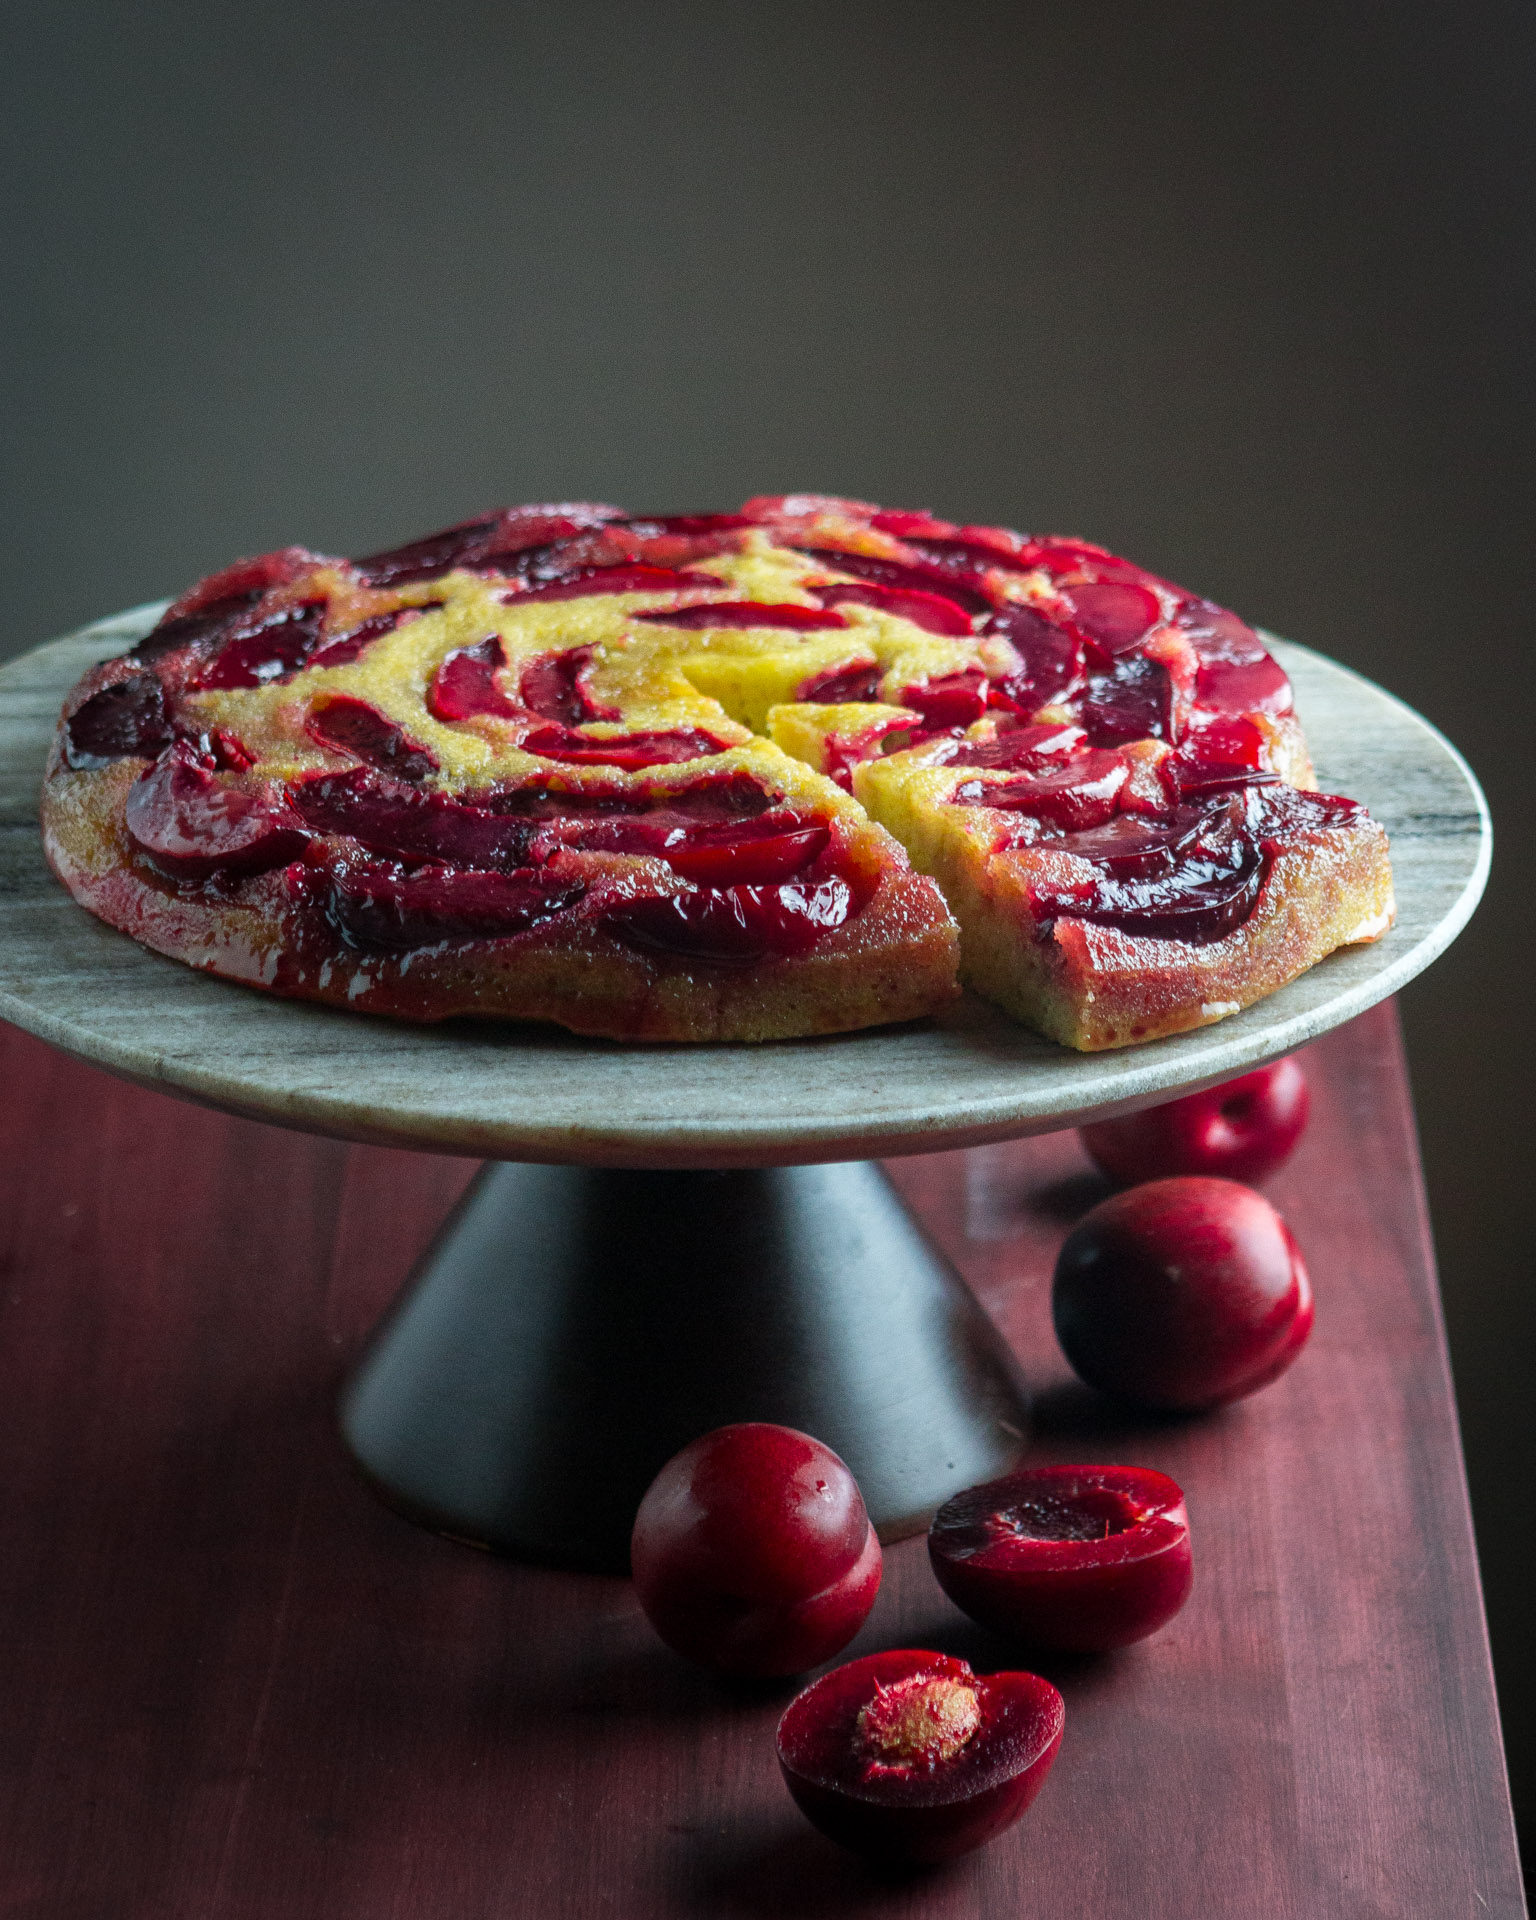 plum-upside-down-cake-9.jpg